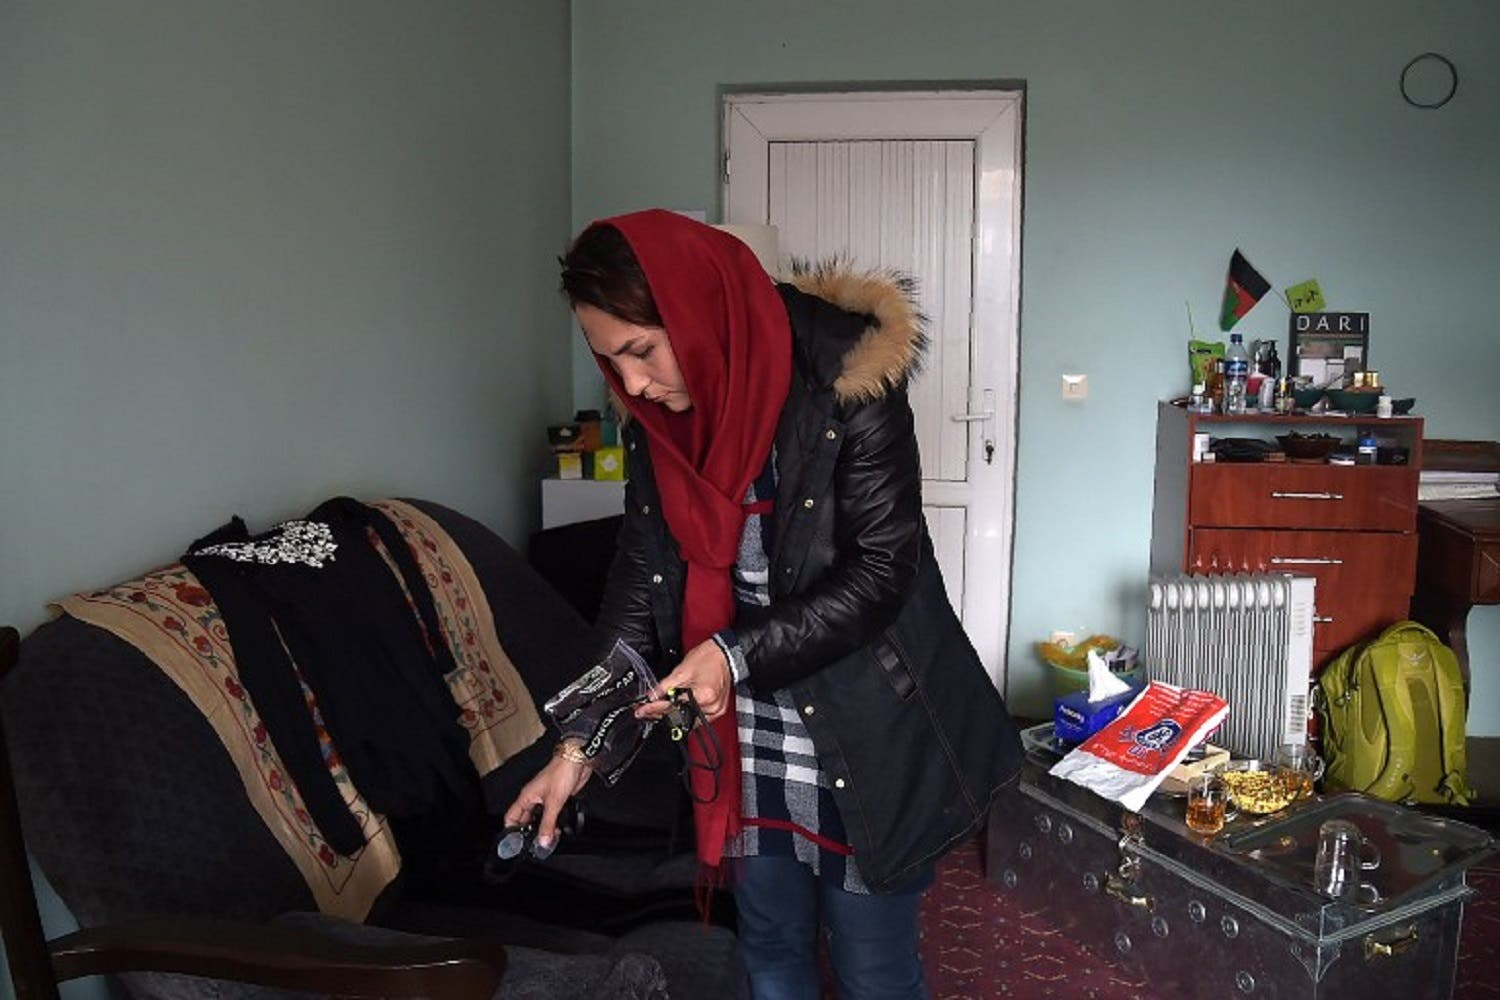 Elena Saboori, 25, head of the newly created Women's Swimming Committee, gathers her gear during an interview in a house in Kabul. (AFP)